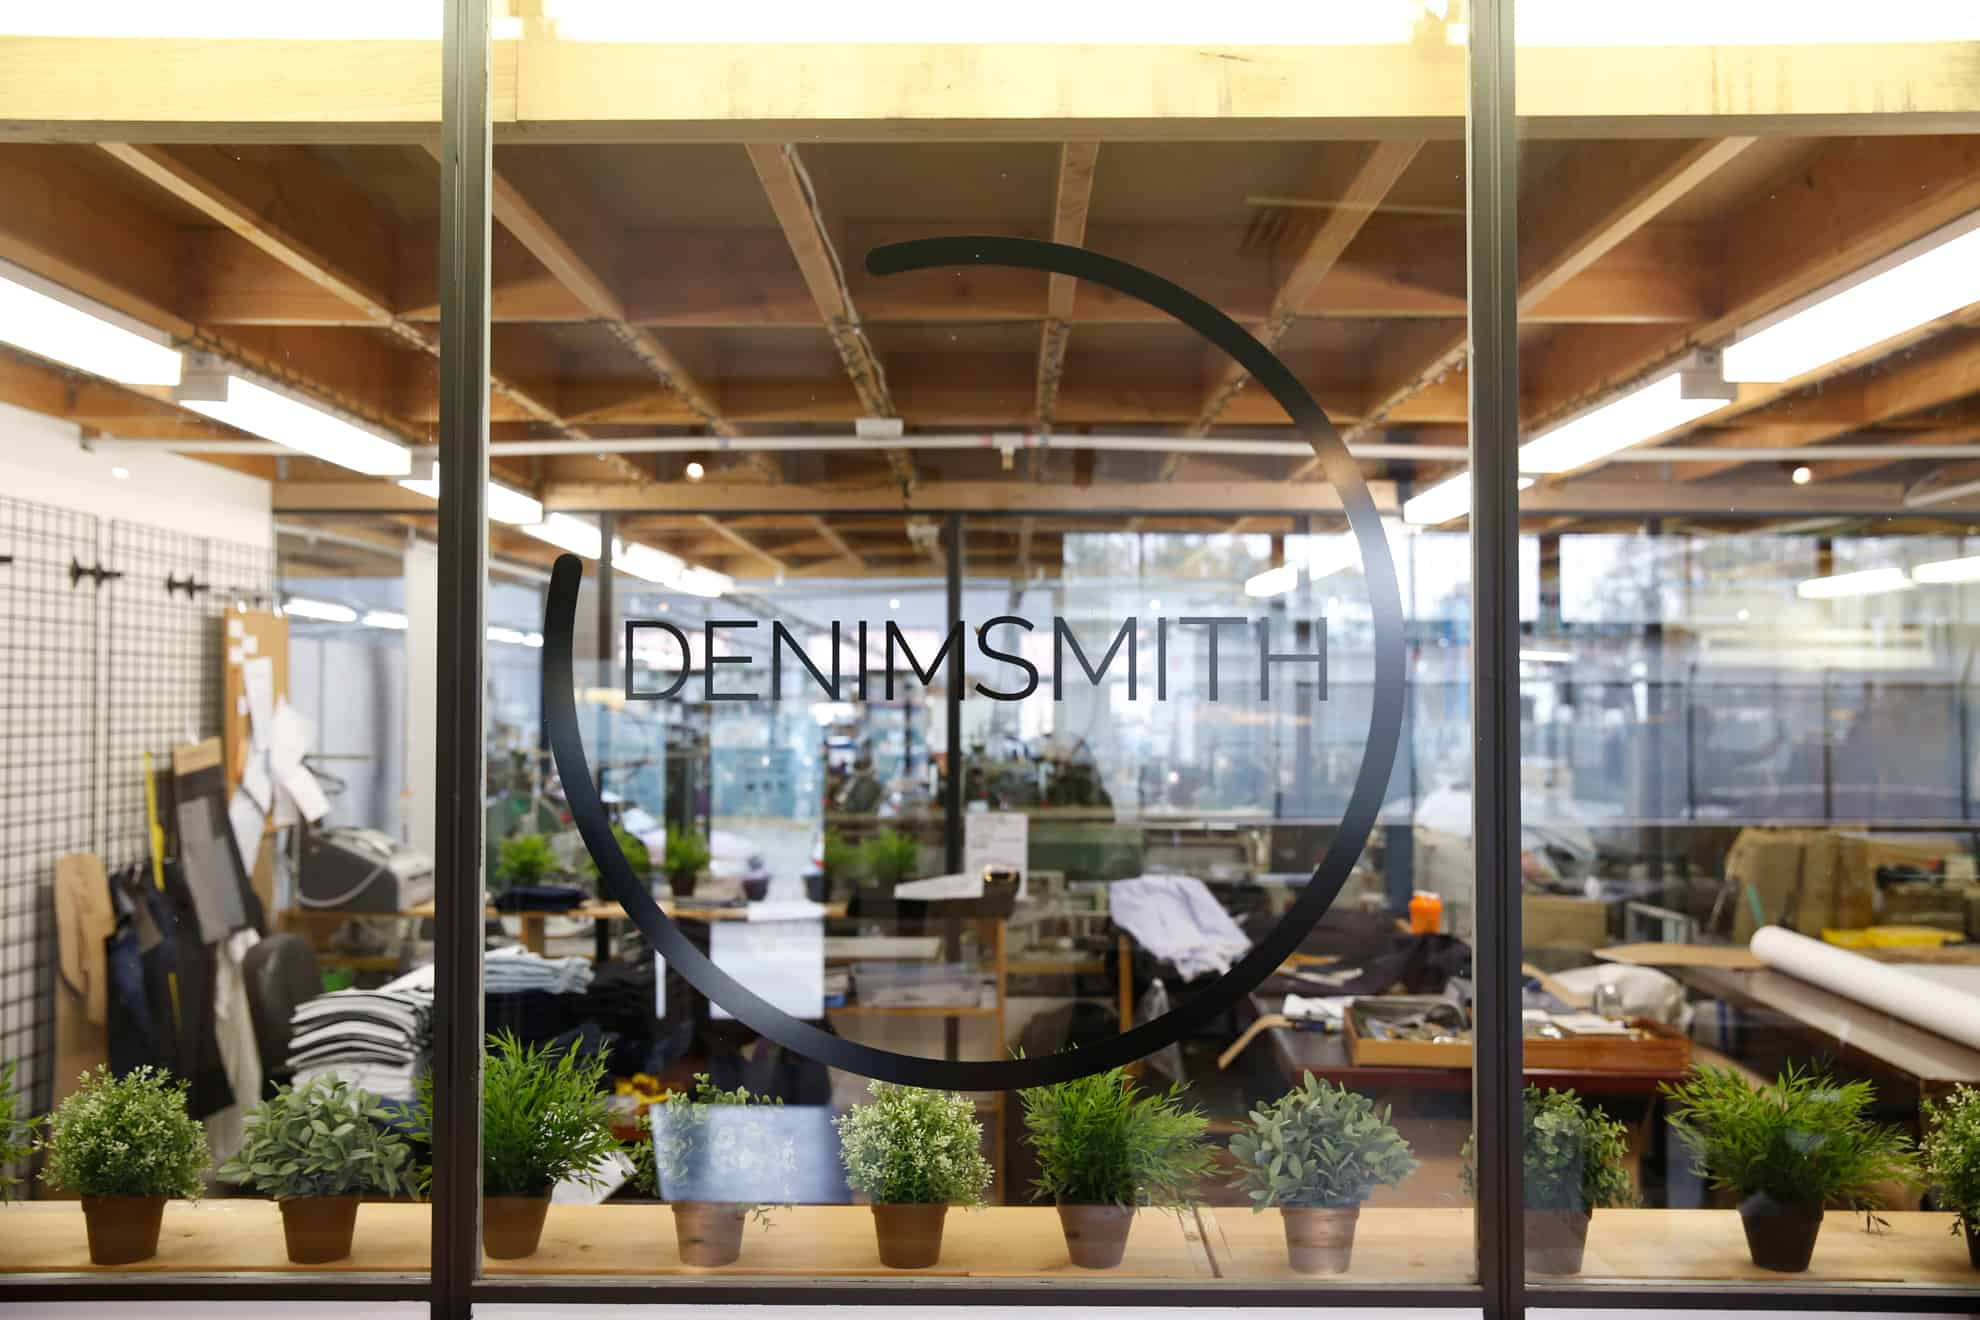 denimsmith-shop-window